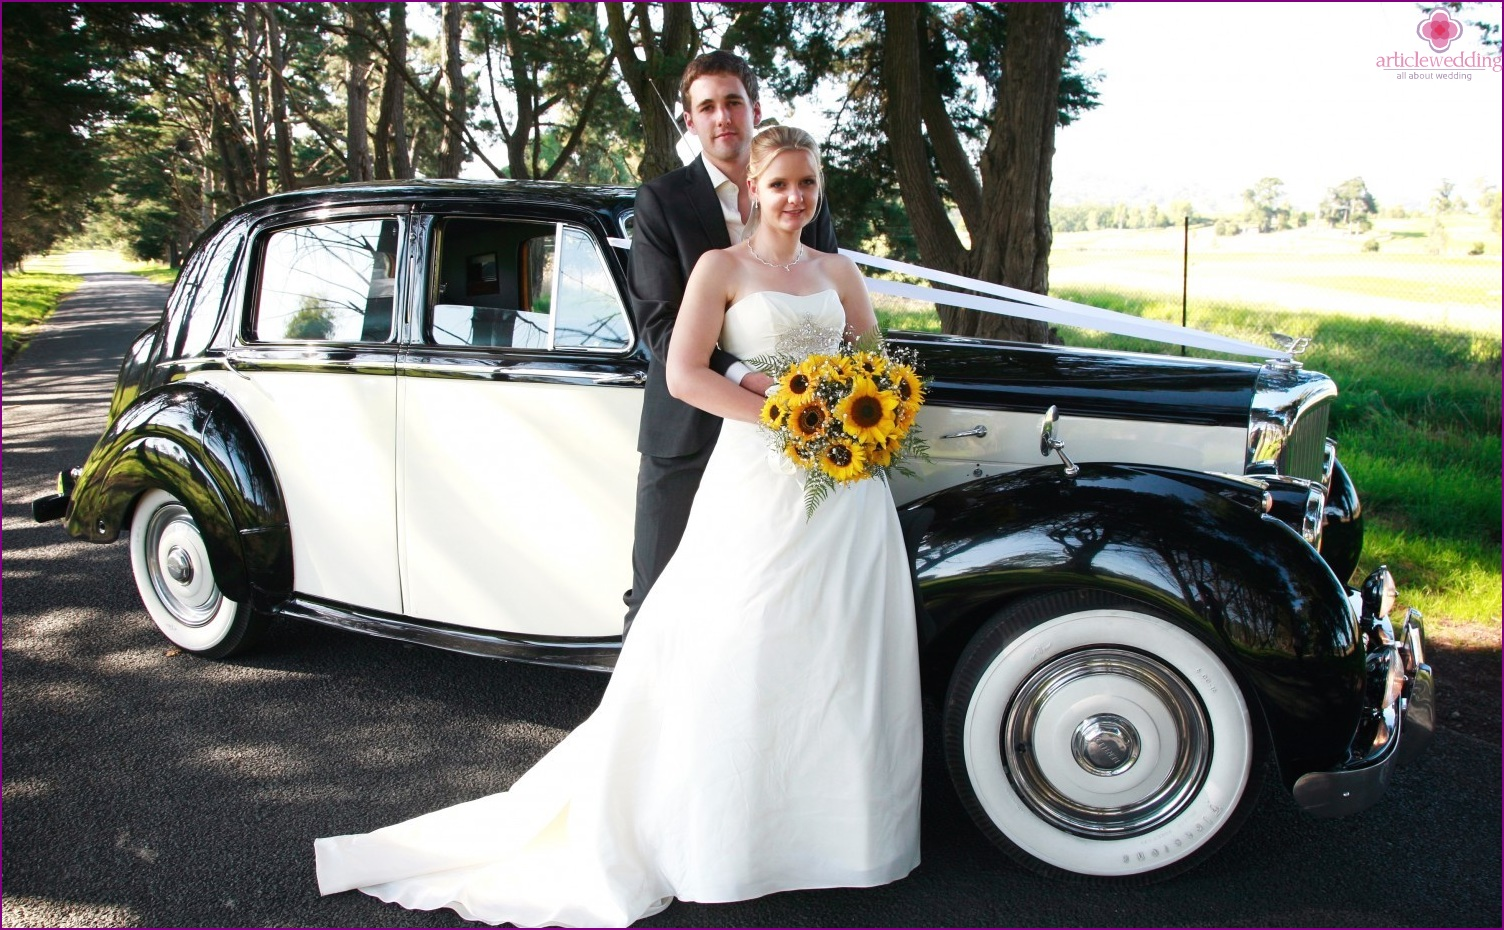 Black and white car for a wedding